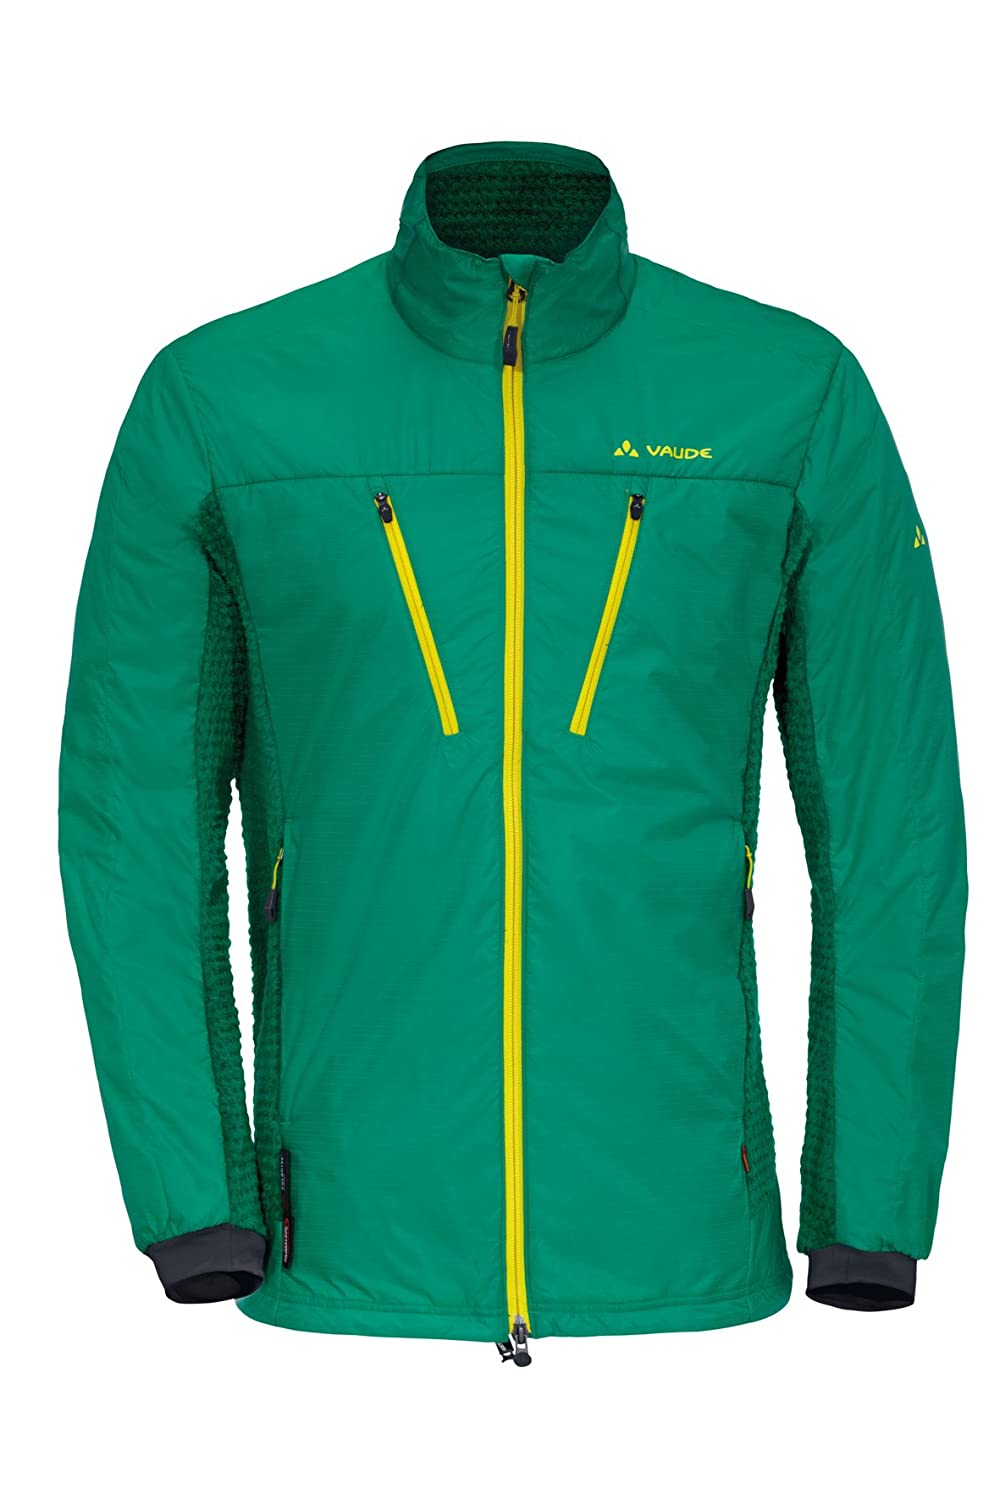 VAUDE Herren Jacke Men's Vallacia Padded Jacket